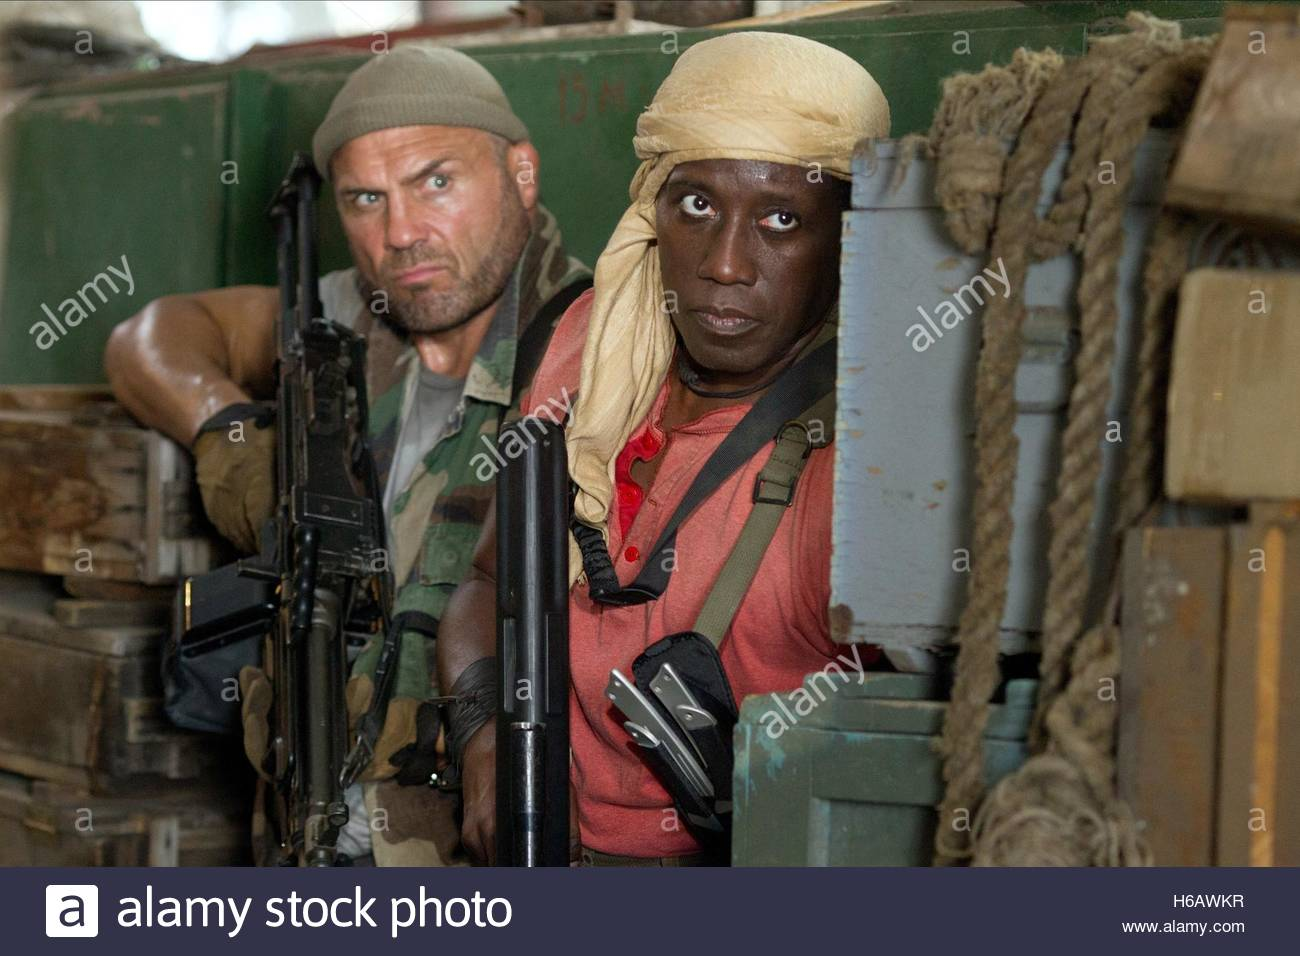 RANDY COUTURE & THE EXPENDABLES 3 Wesley Snipes (2014) Photo Stock